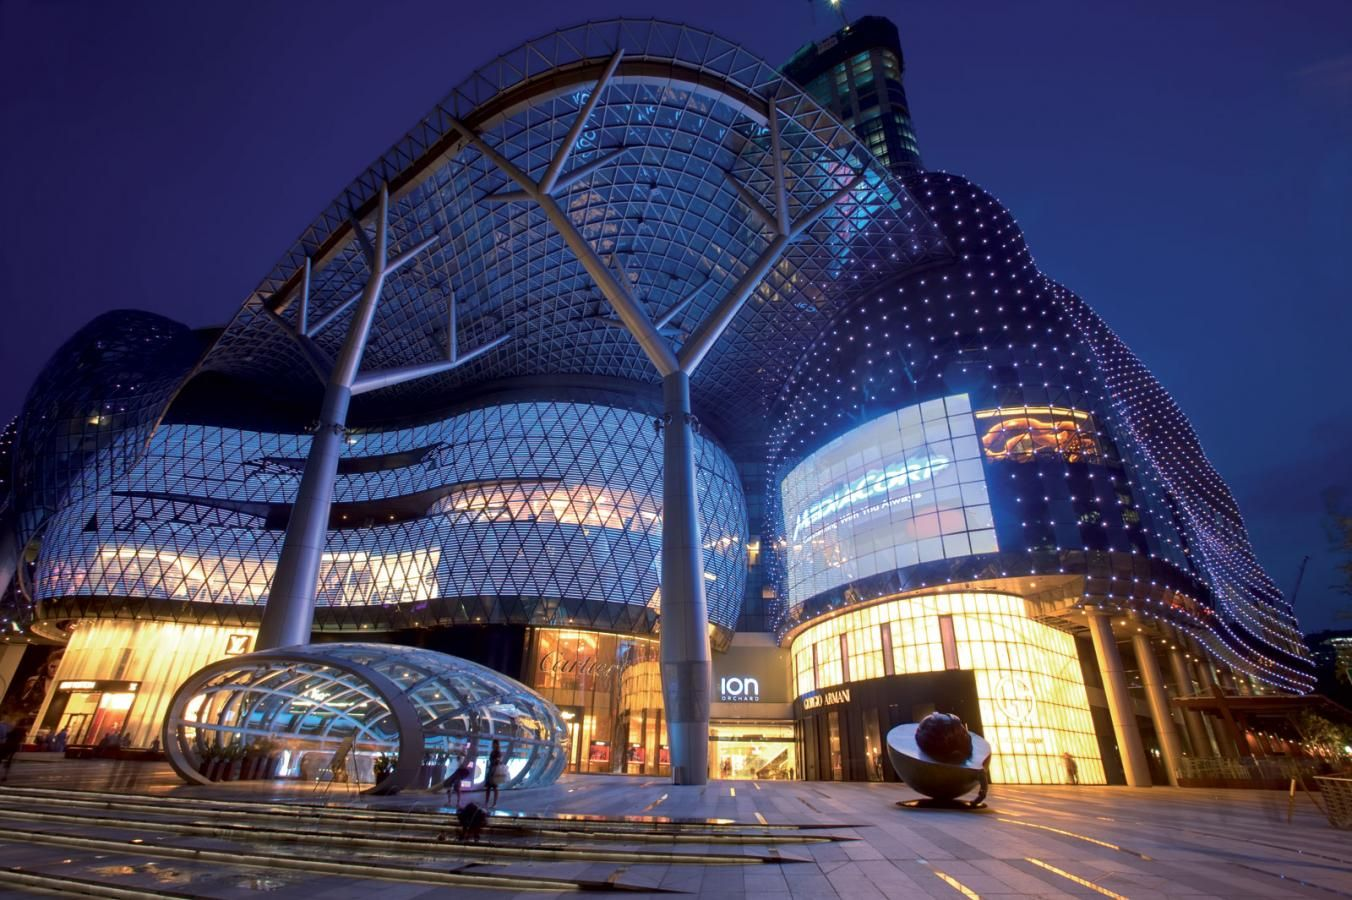 Ion Orchard Singapore Shopping Mall Architecture Singapore Orchard Singapore